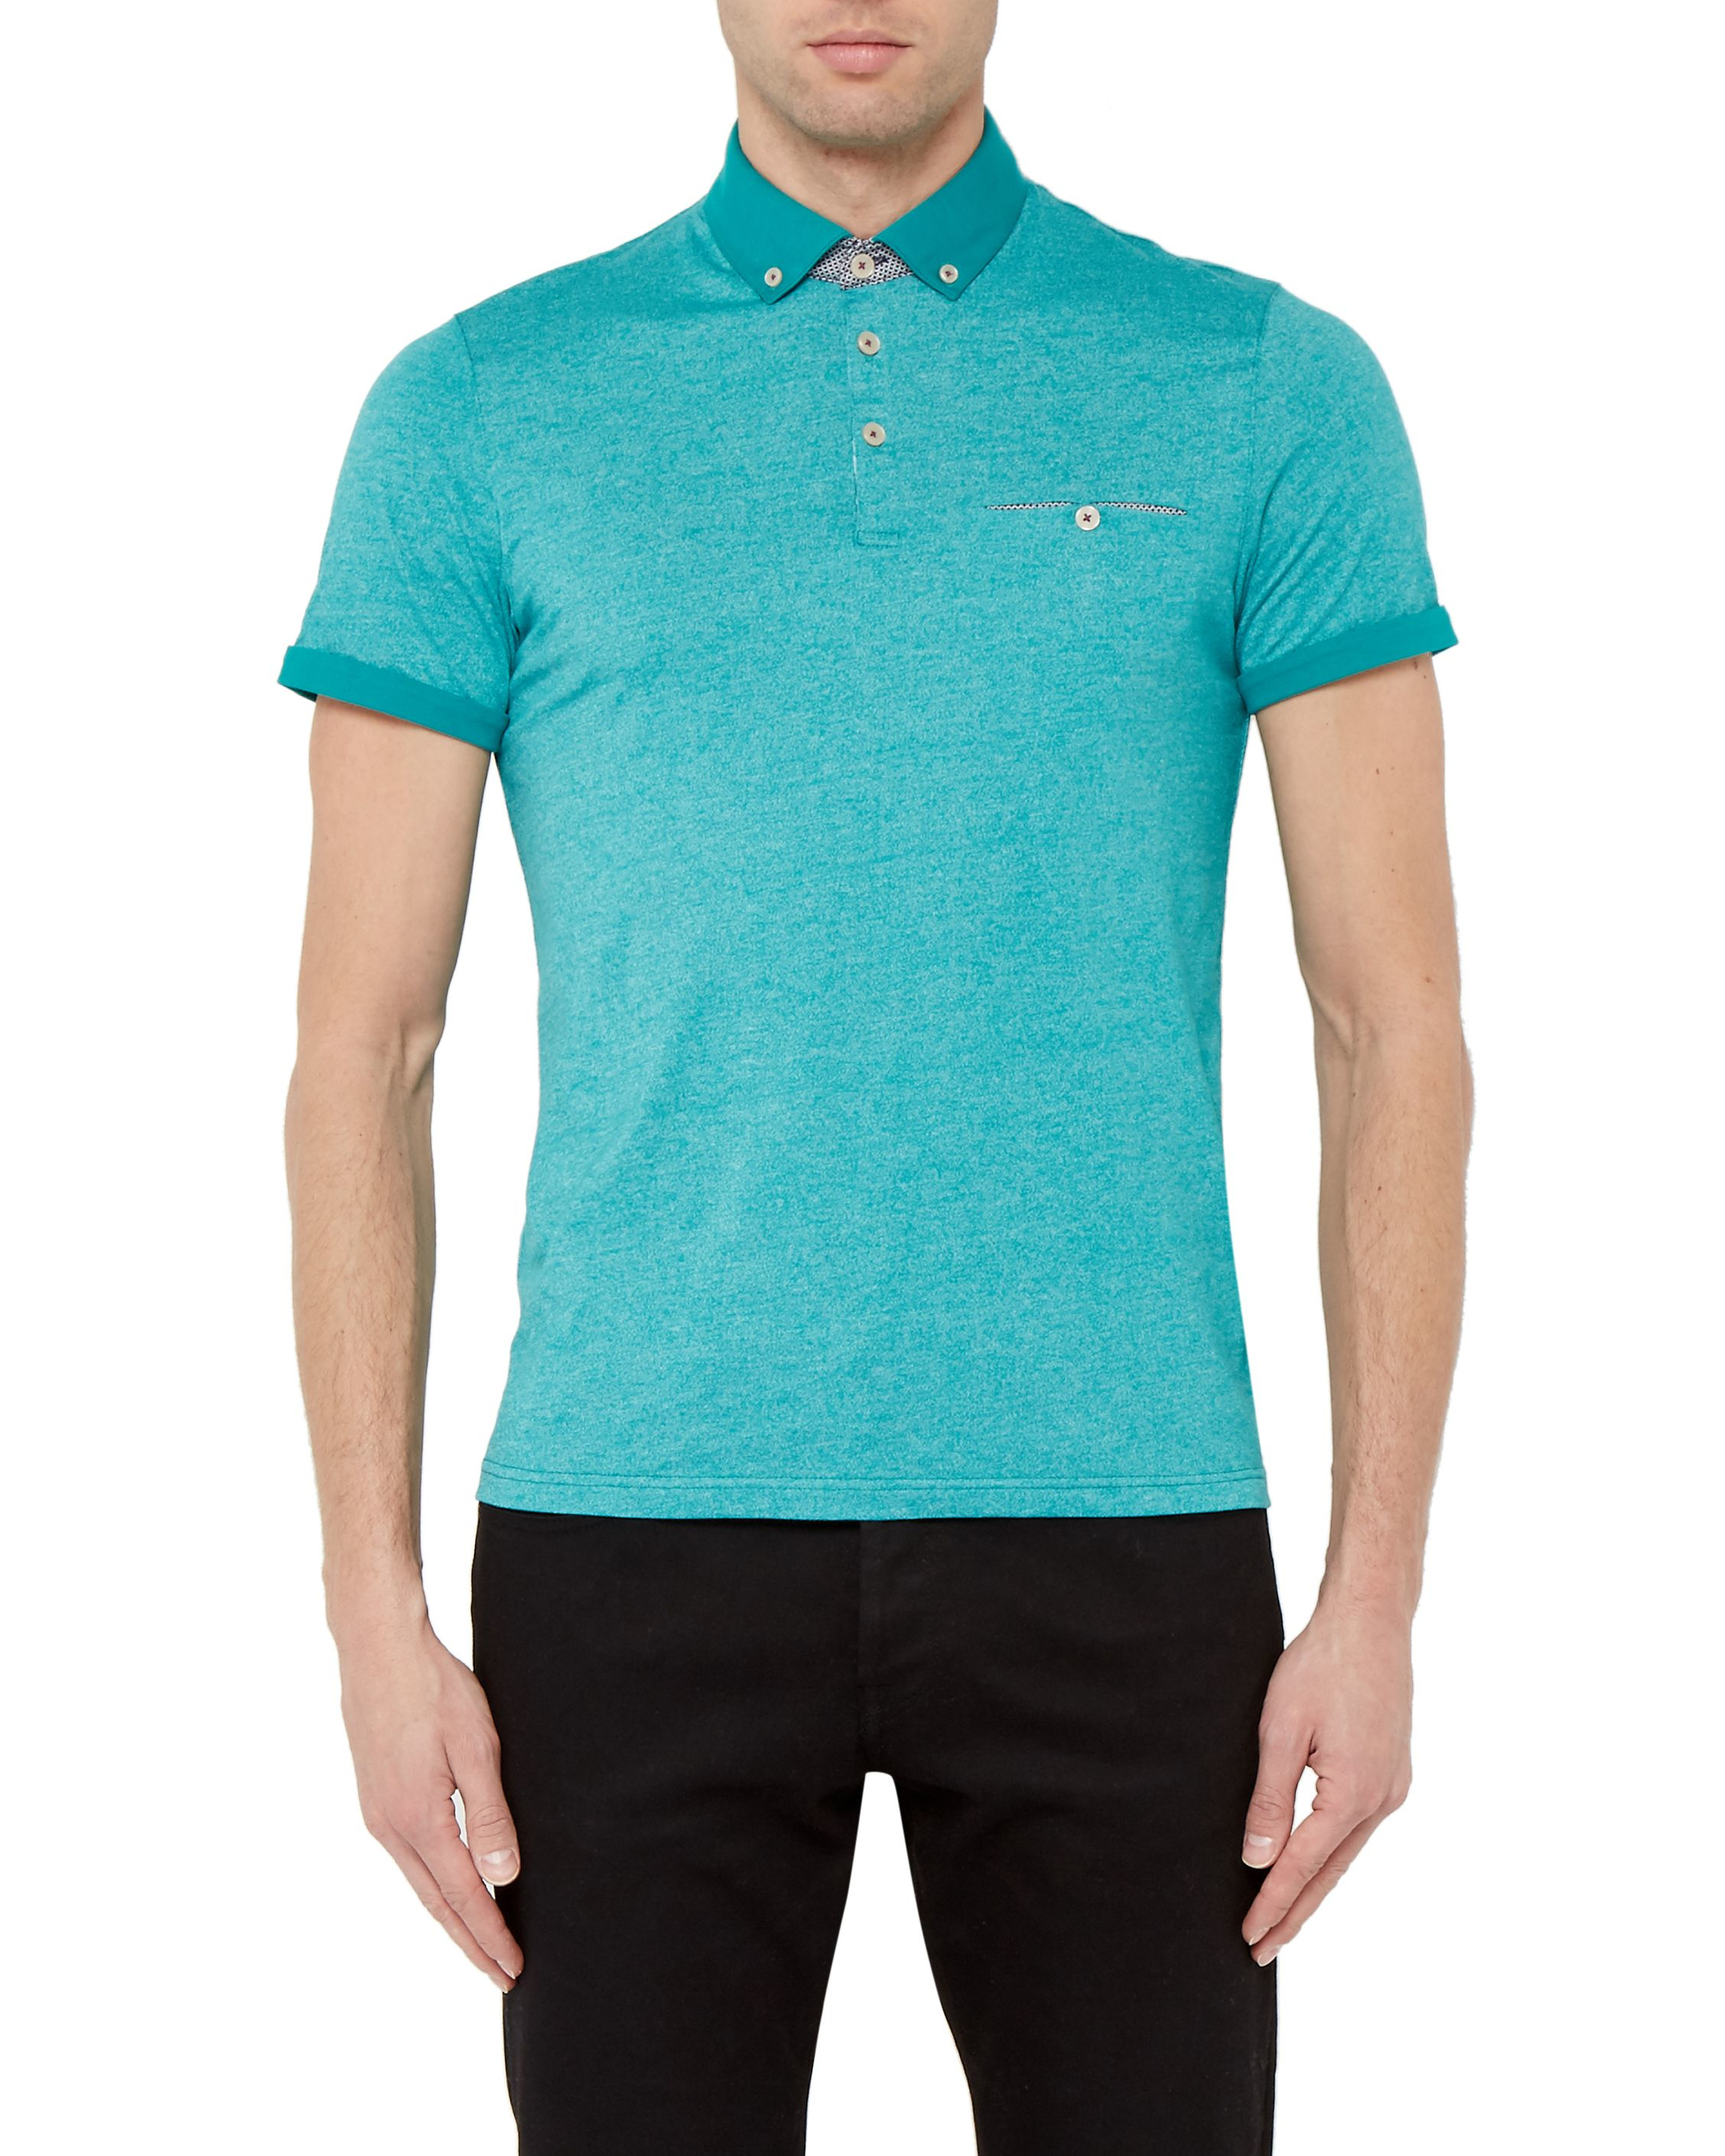 Ted baker gangnam rolled cuff cotton polo shirt in blue for Mint color polo shirt